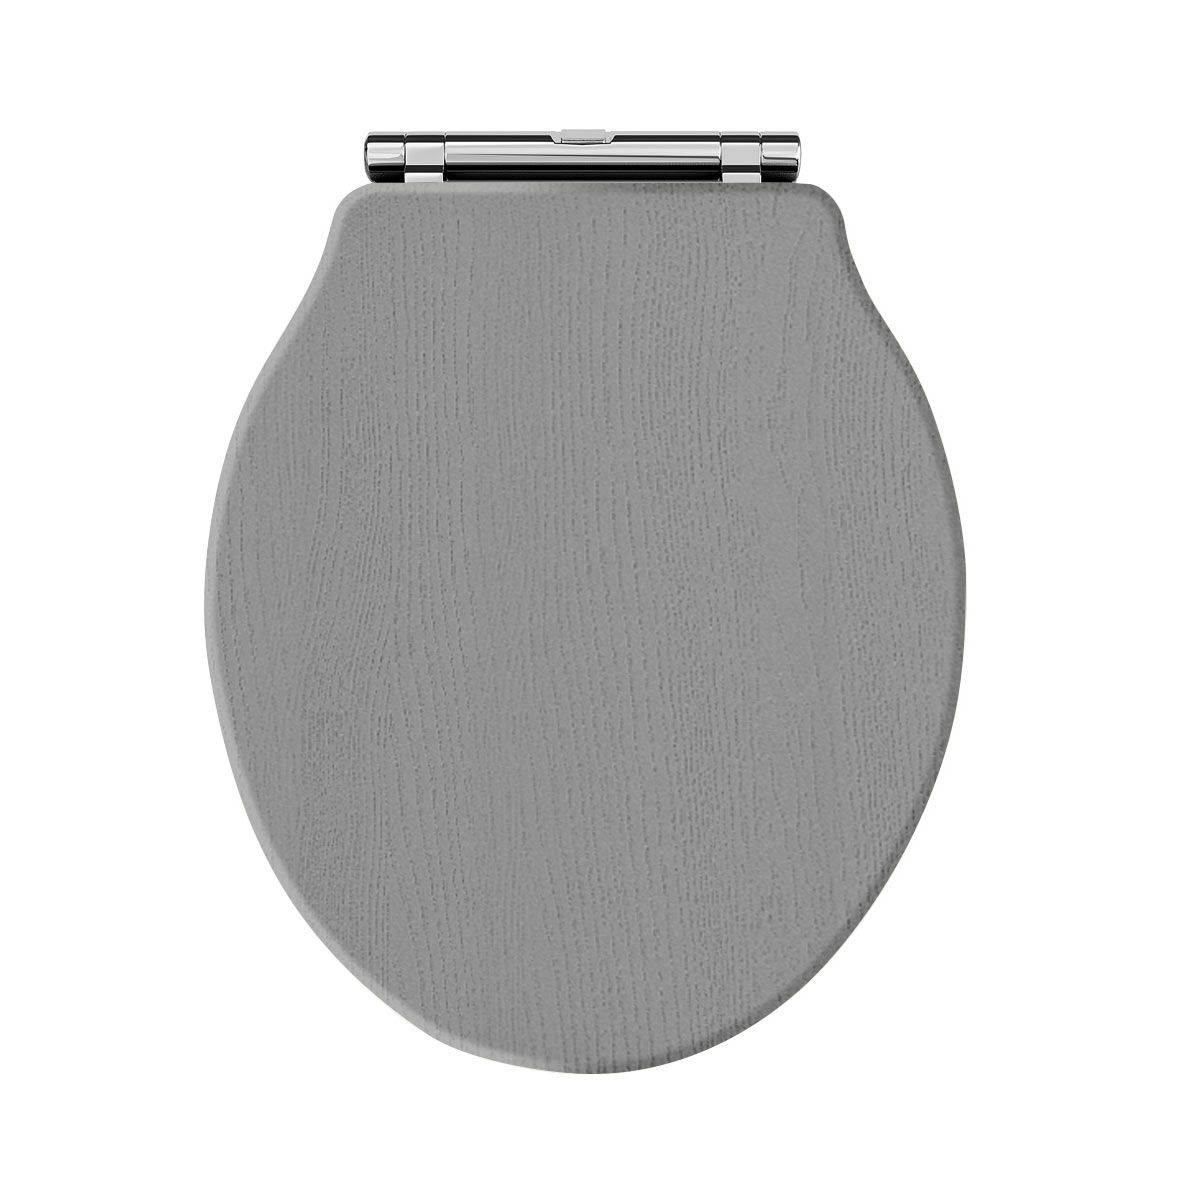 Hudson Reed Chancery Storm Grey Soft Close Toilet Seat